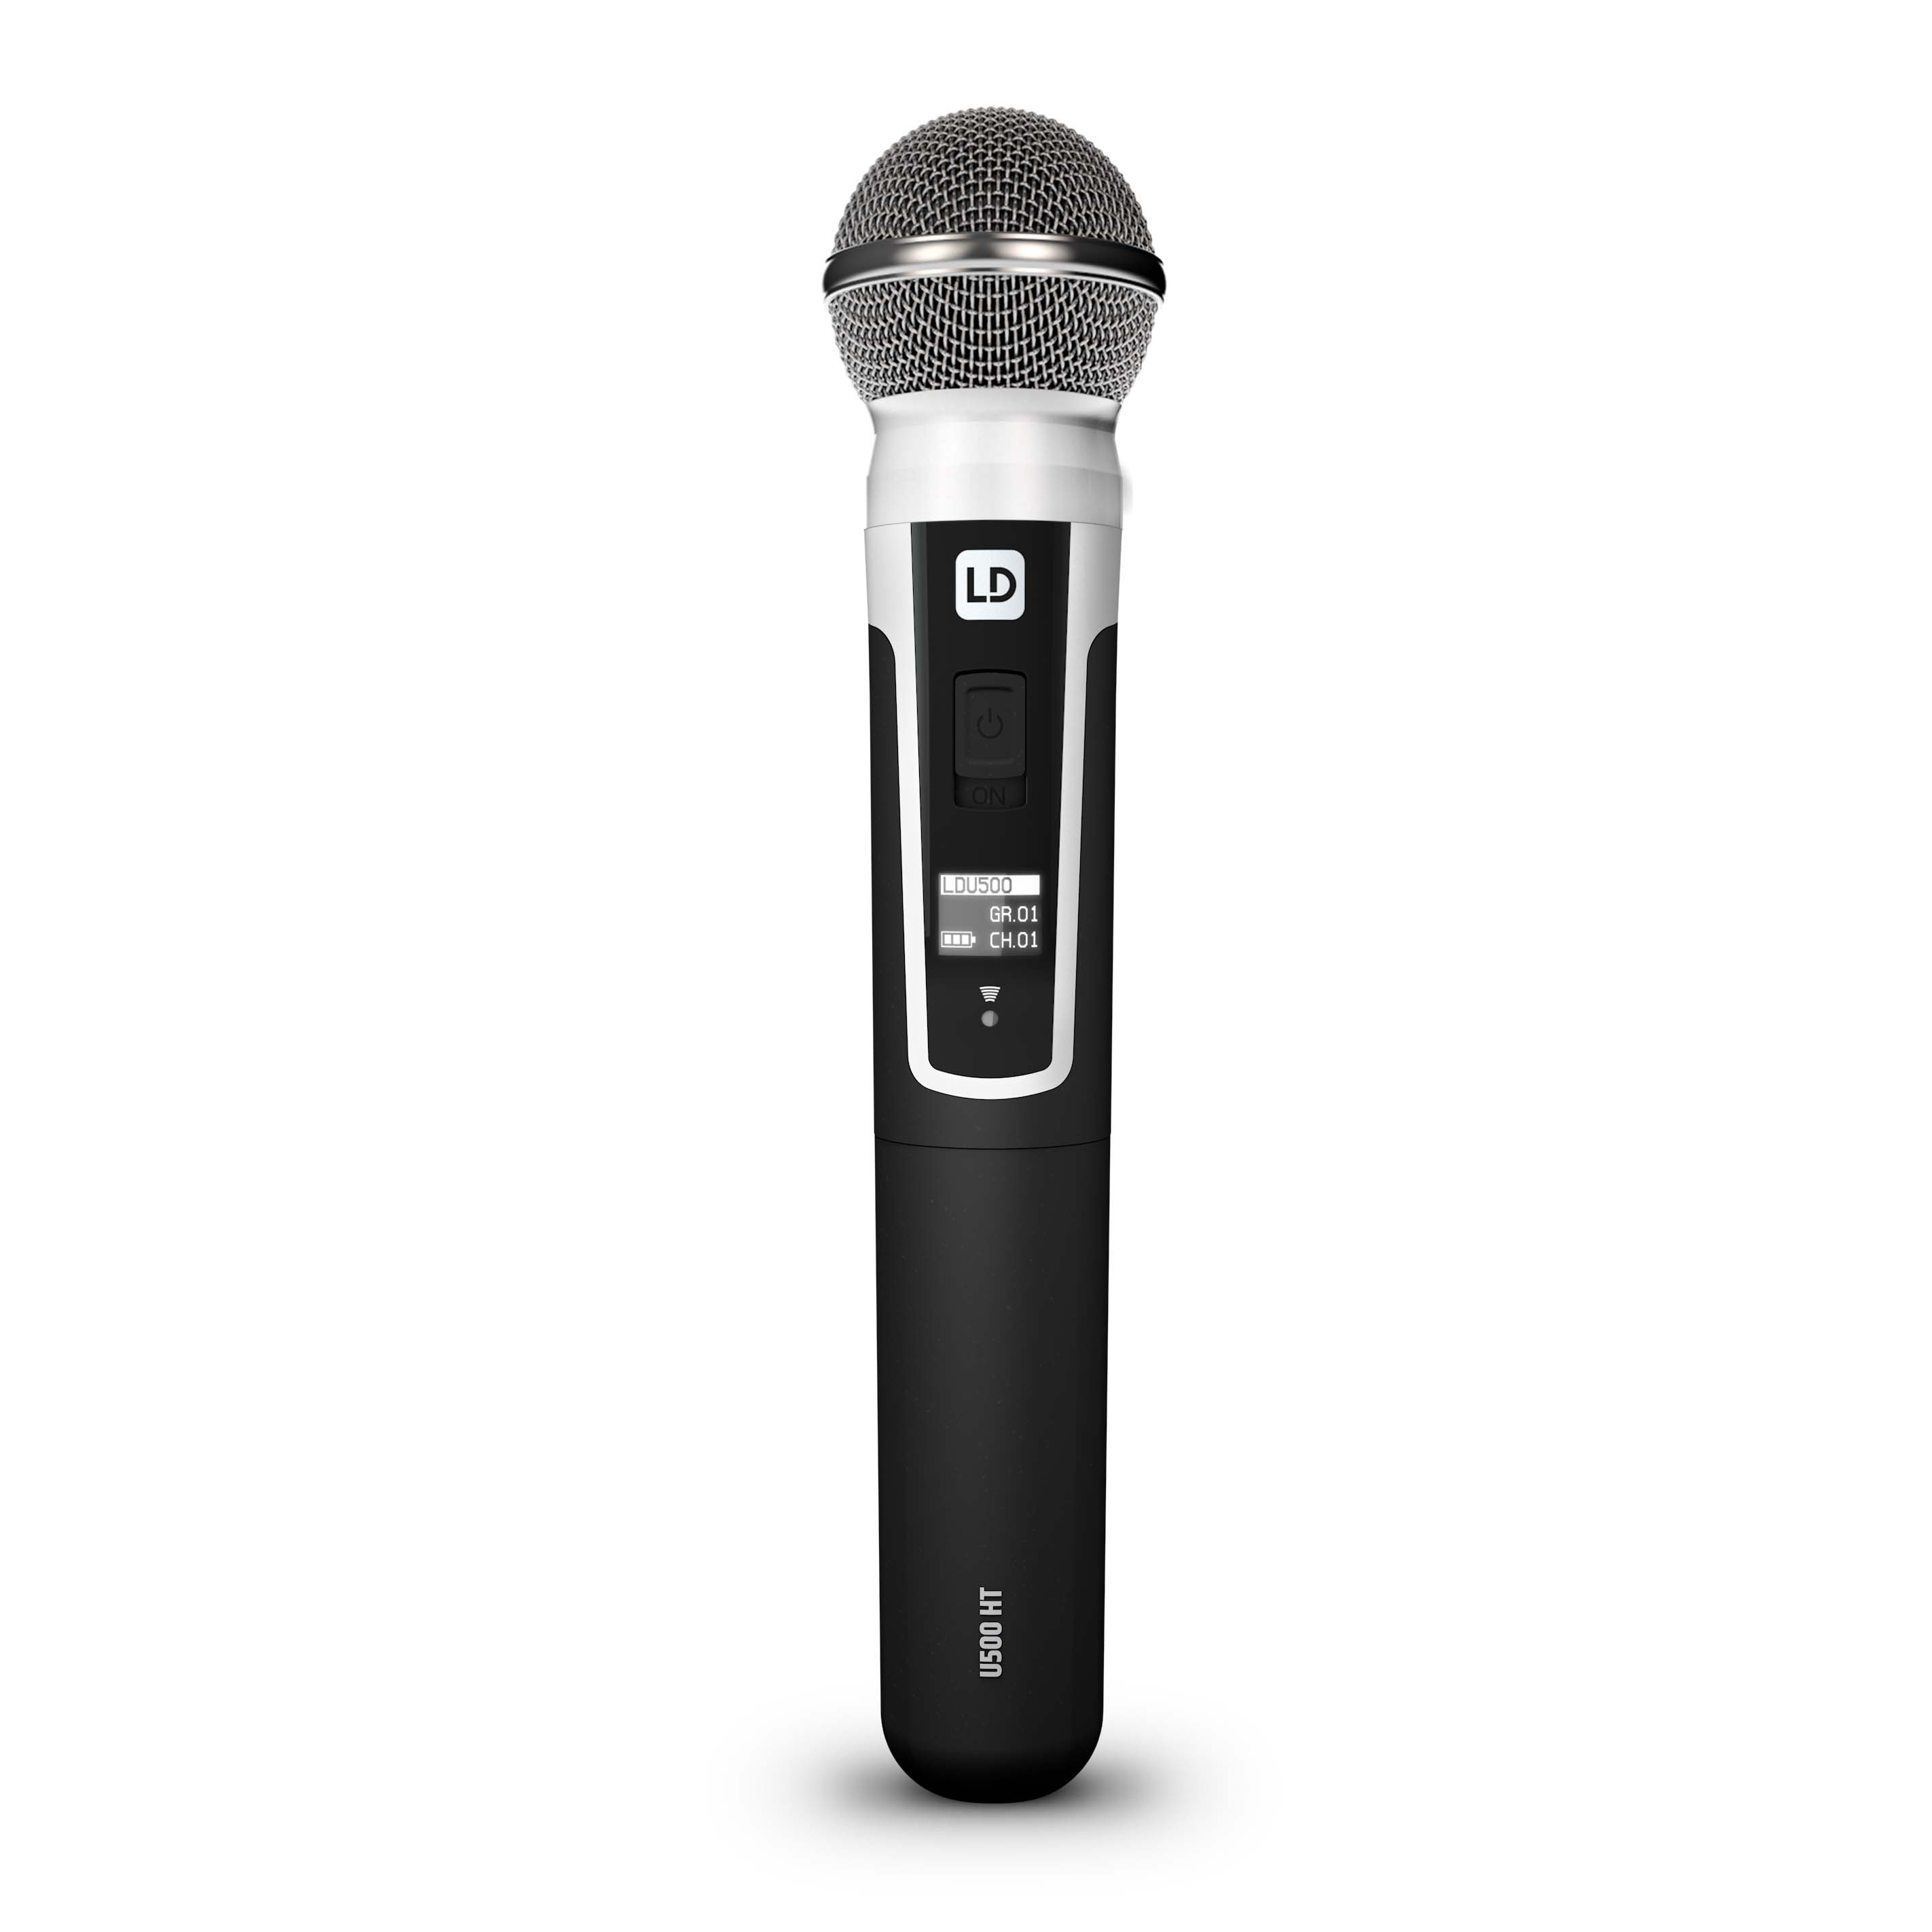 U506 HHD Wireless Microphone System with Dynamic Handheld Microphone